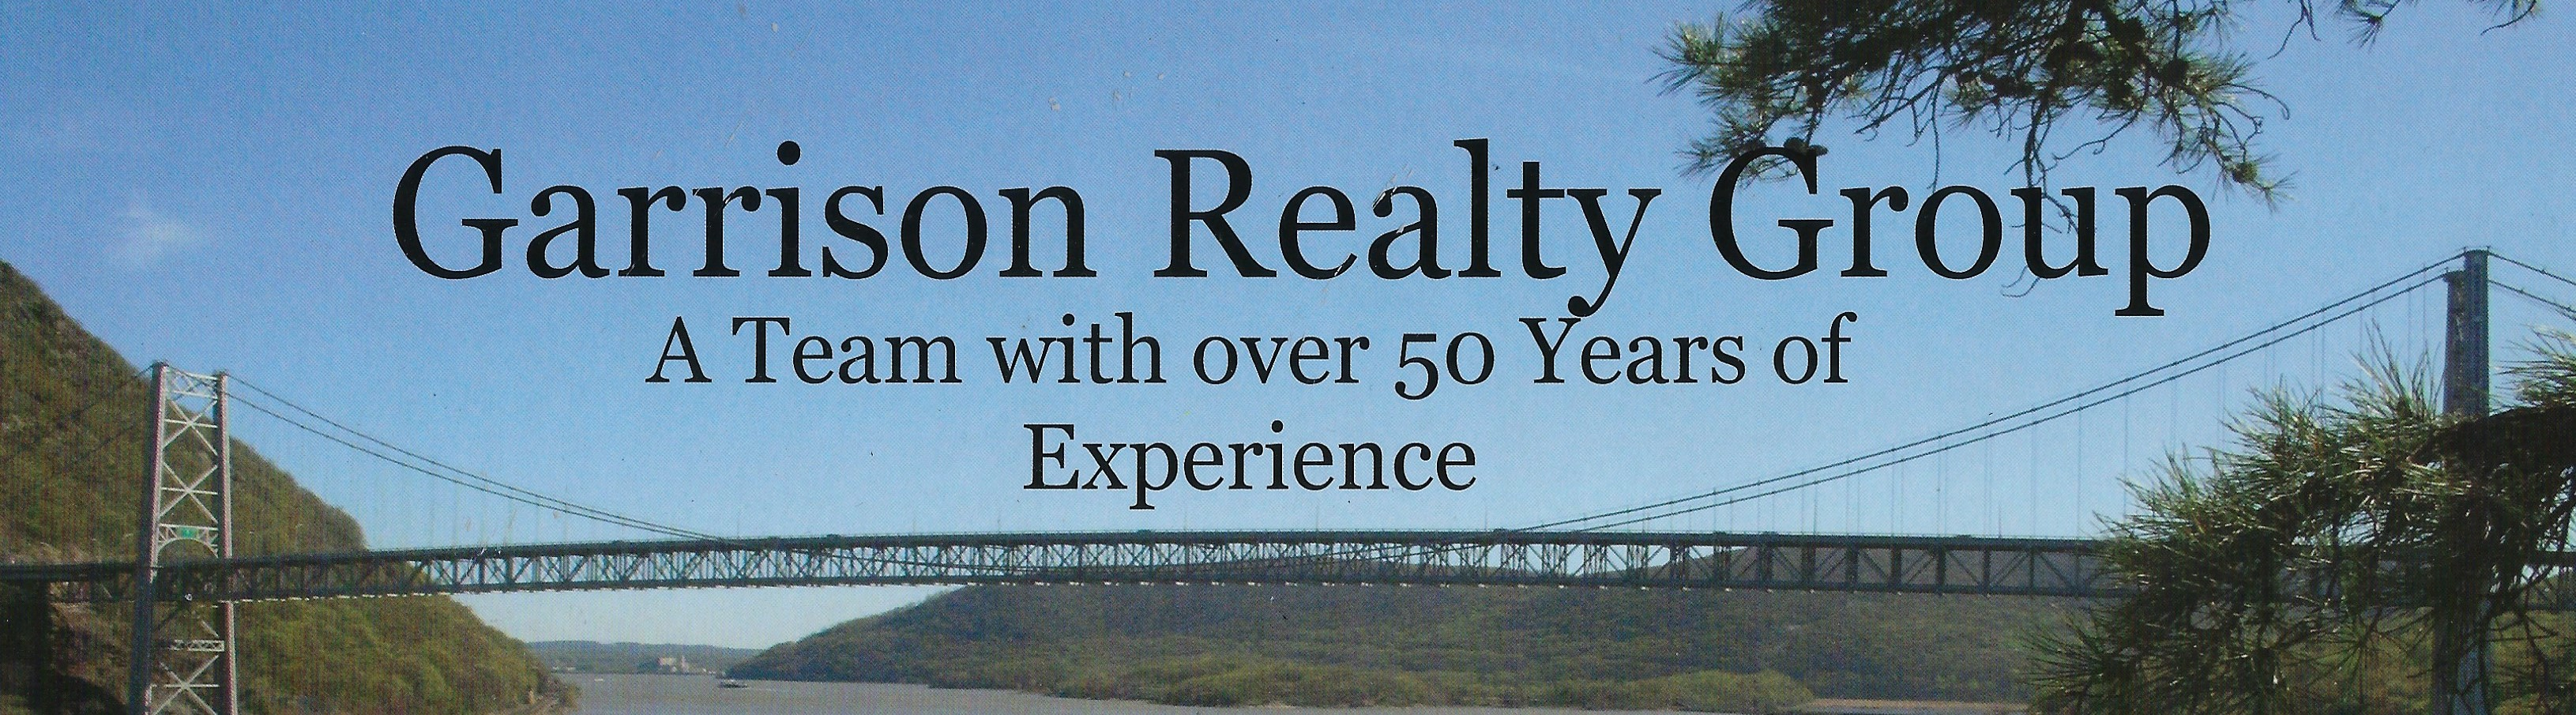 Garrison Realty Group